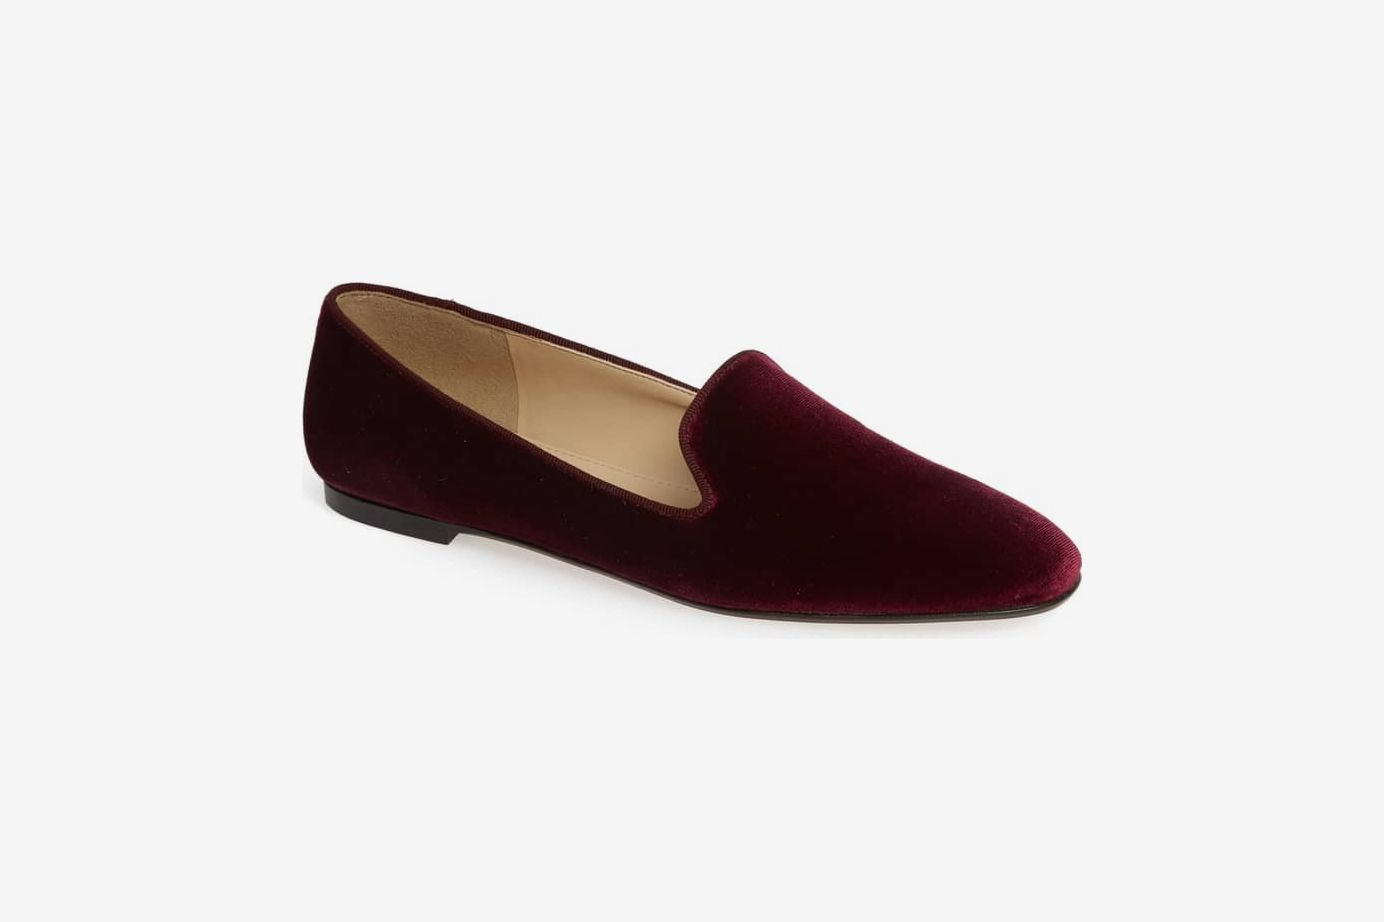 J.Crew Smoking Slipper